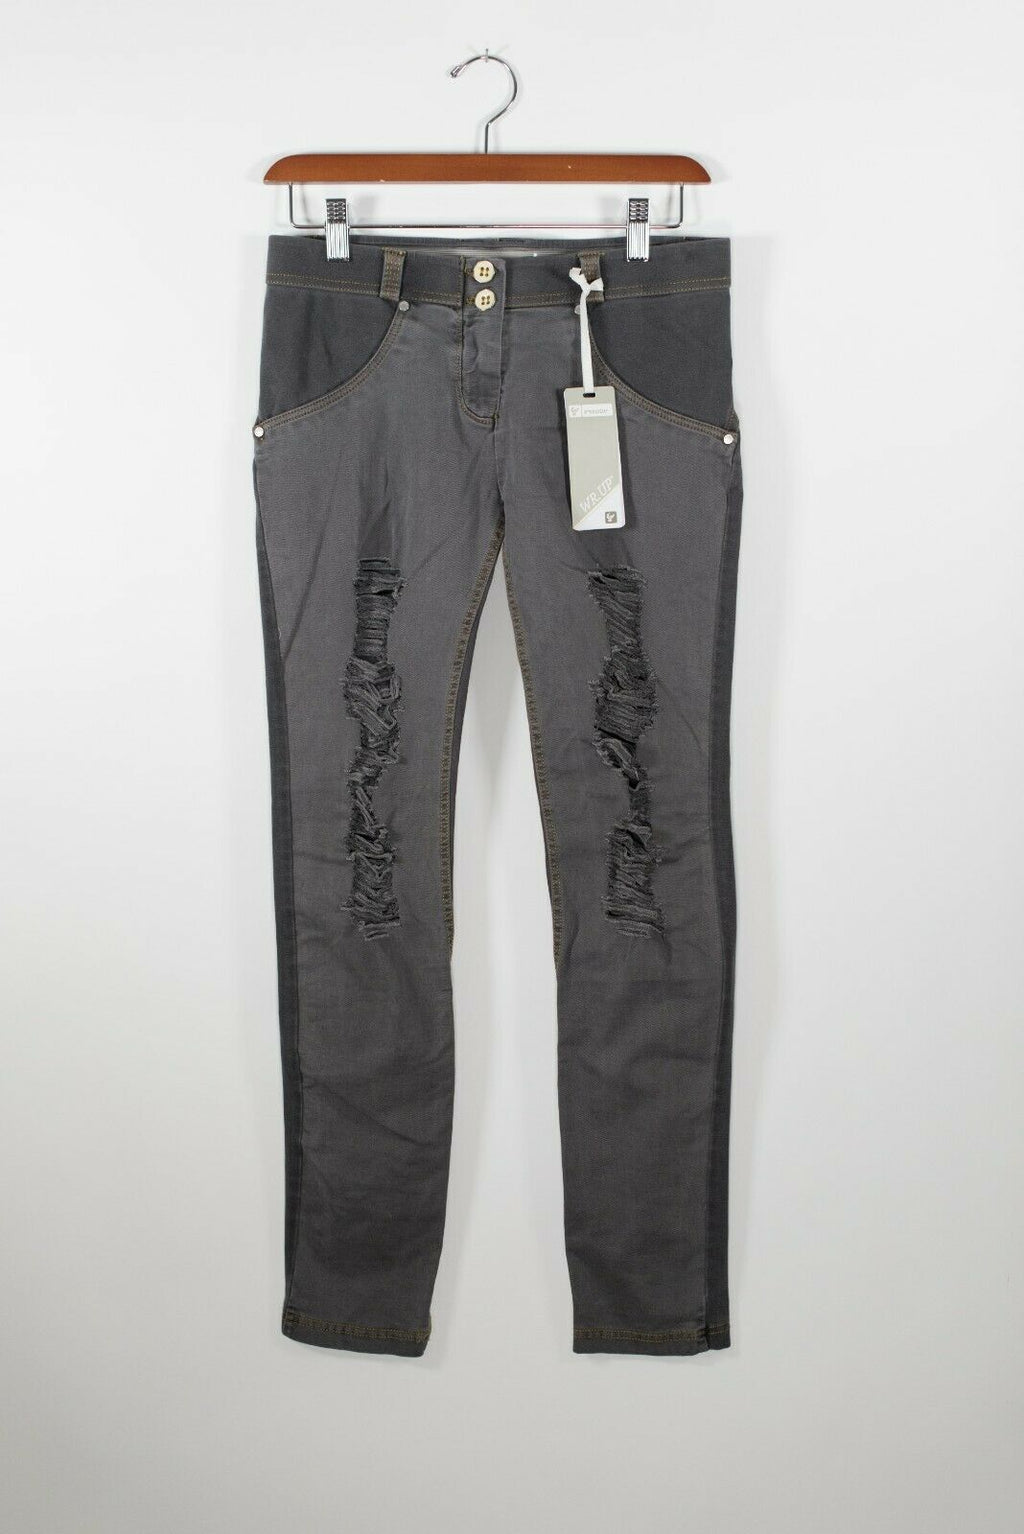 Freddy Womens Size Small Gray Pants Shaping Low Rise Skinny Distressed Denim NWT